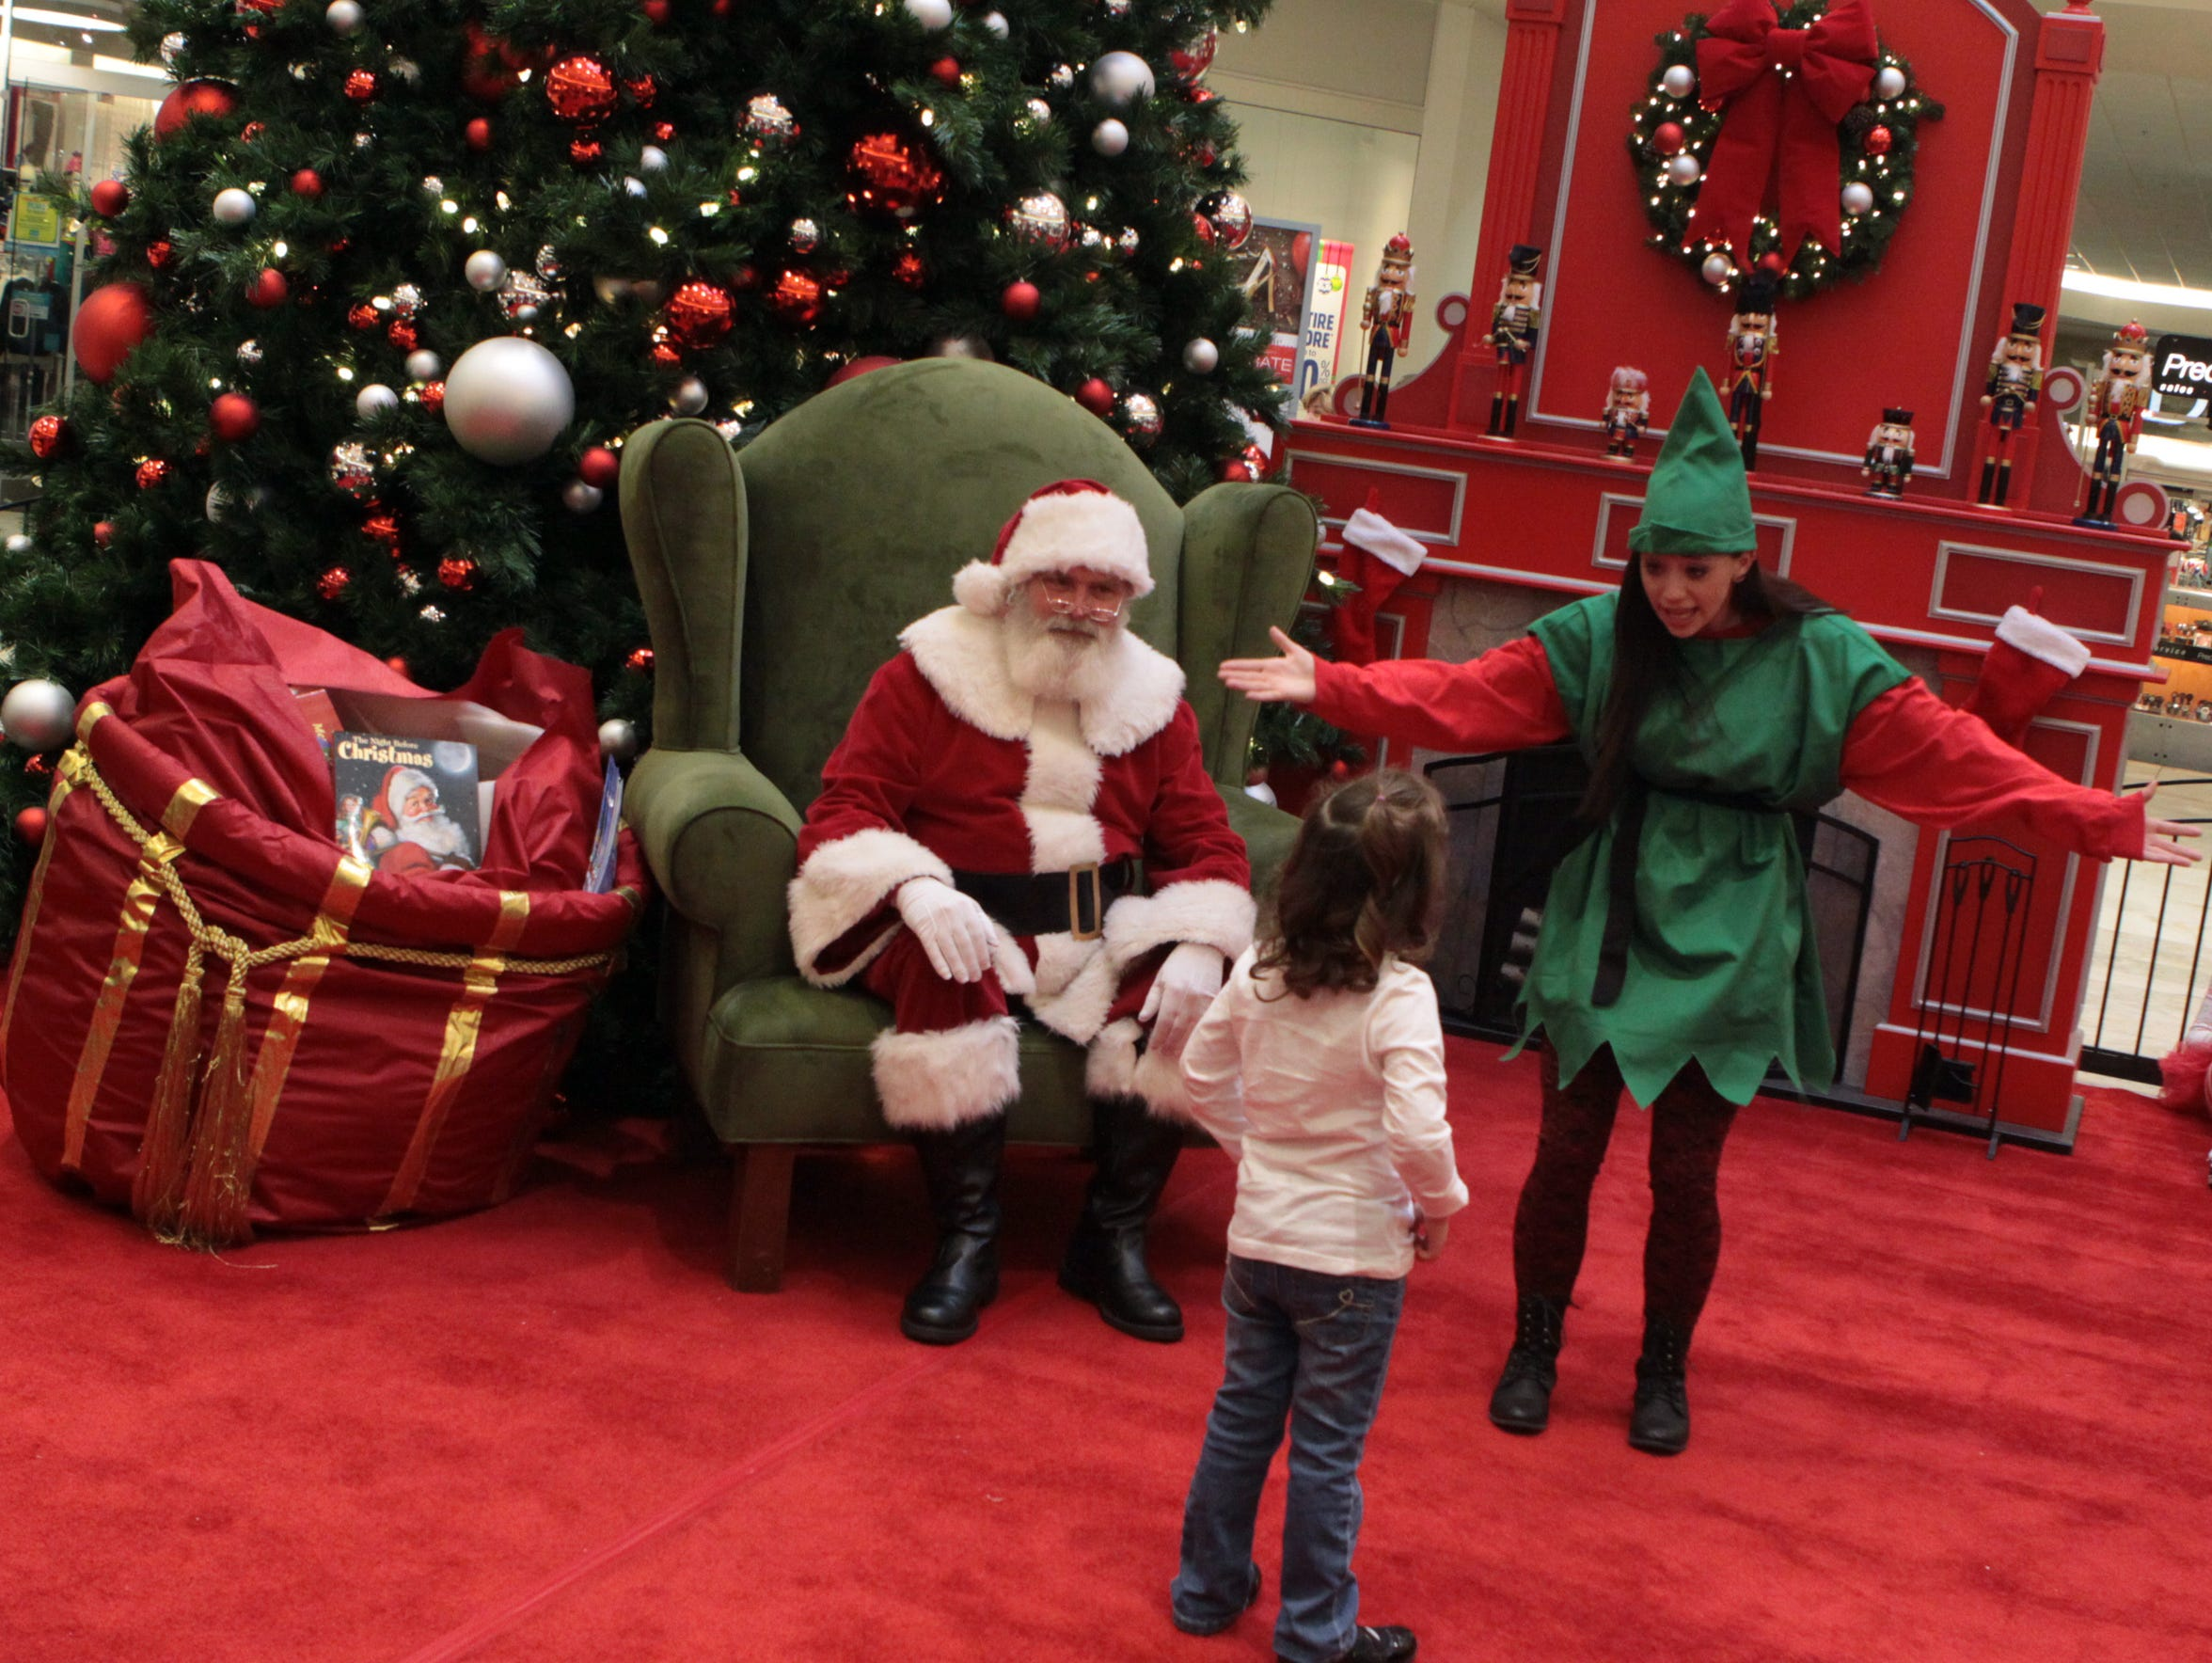 Santa Claus makes his first visit to Clarksville this